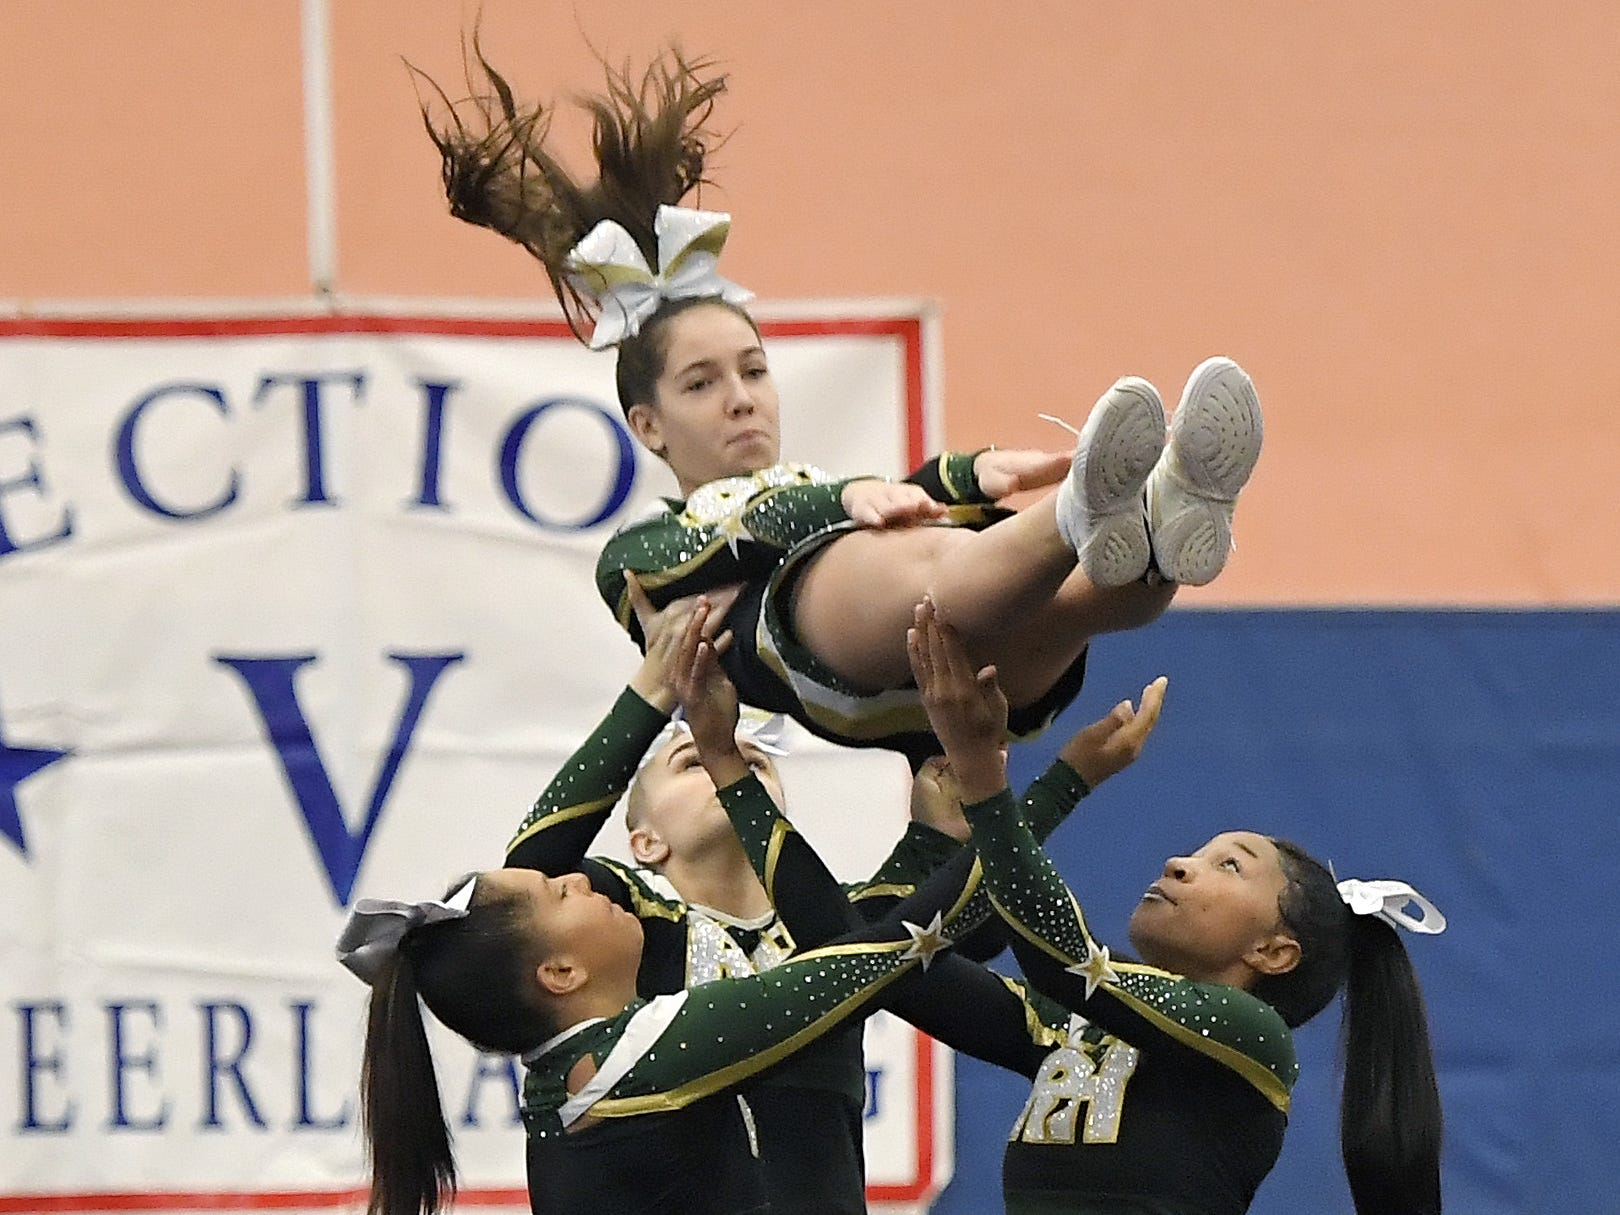 Rush-Henrietta cheerleaders perform their routine during the Section V Fall Cheerleading Championships at RIT, Saturday, Oct. 27, 2018.